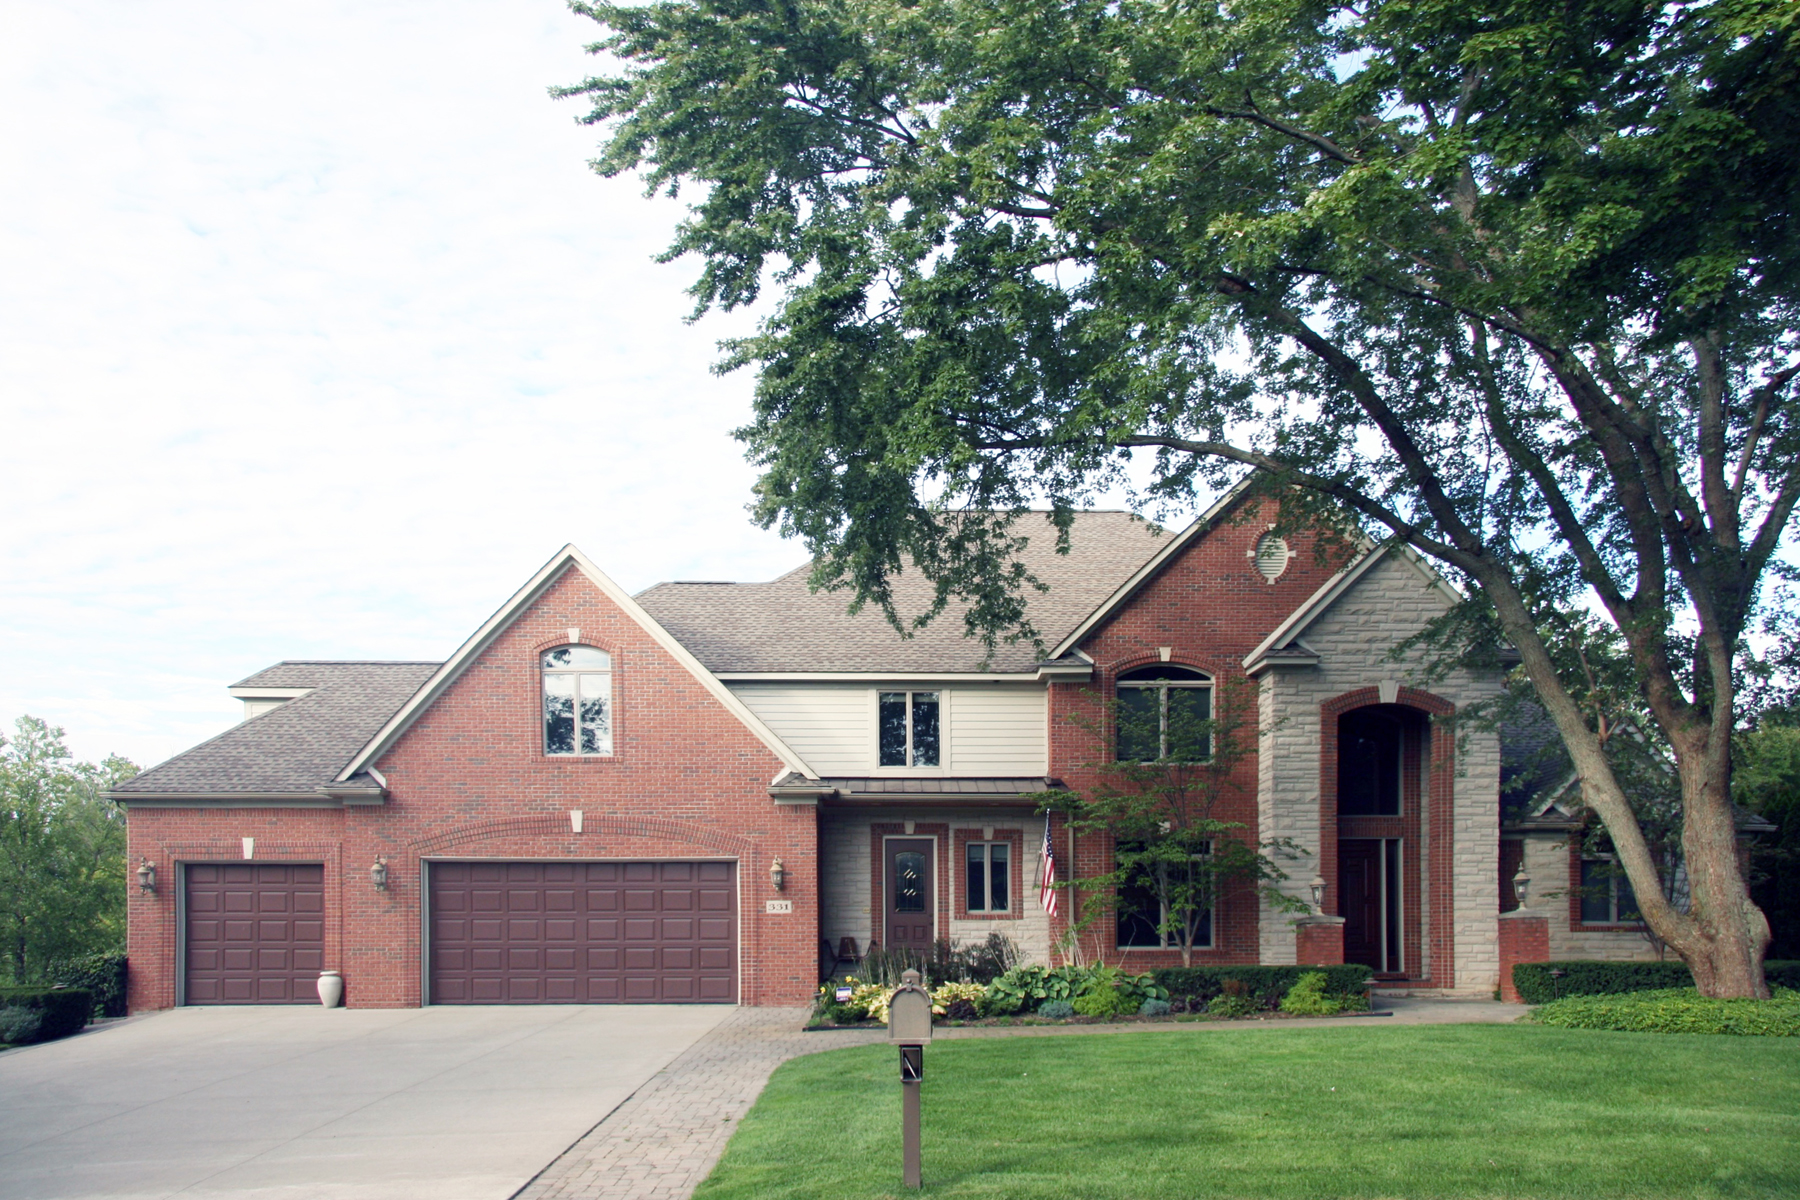 Single Family Home for Sale at Waterford 331 Beverly Island, Waterford, Michigan, 48328 United States